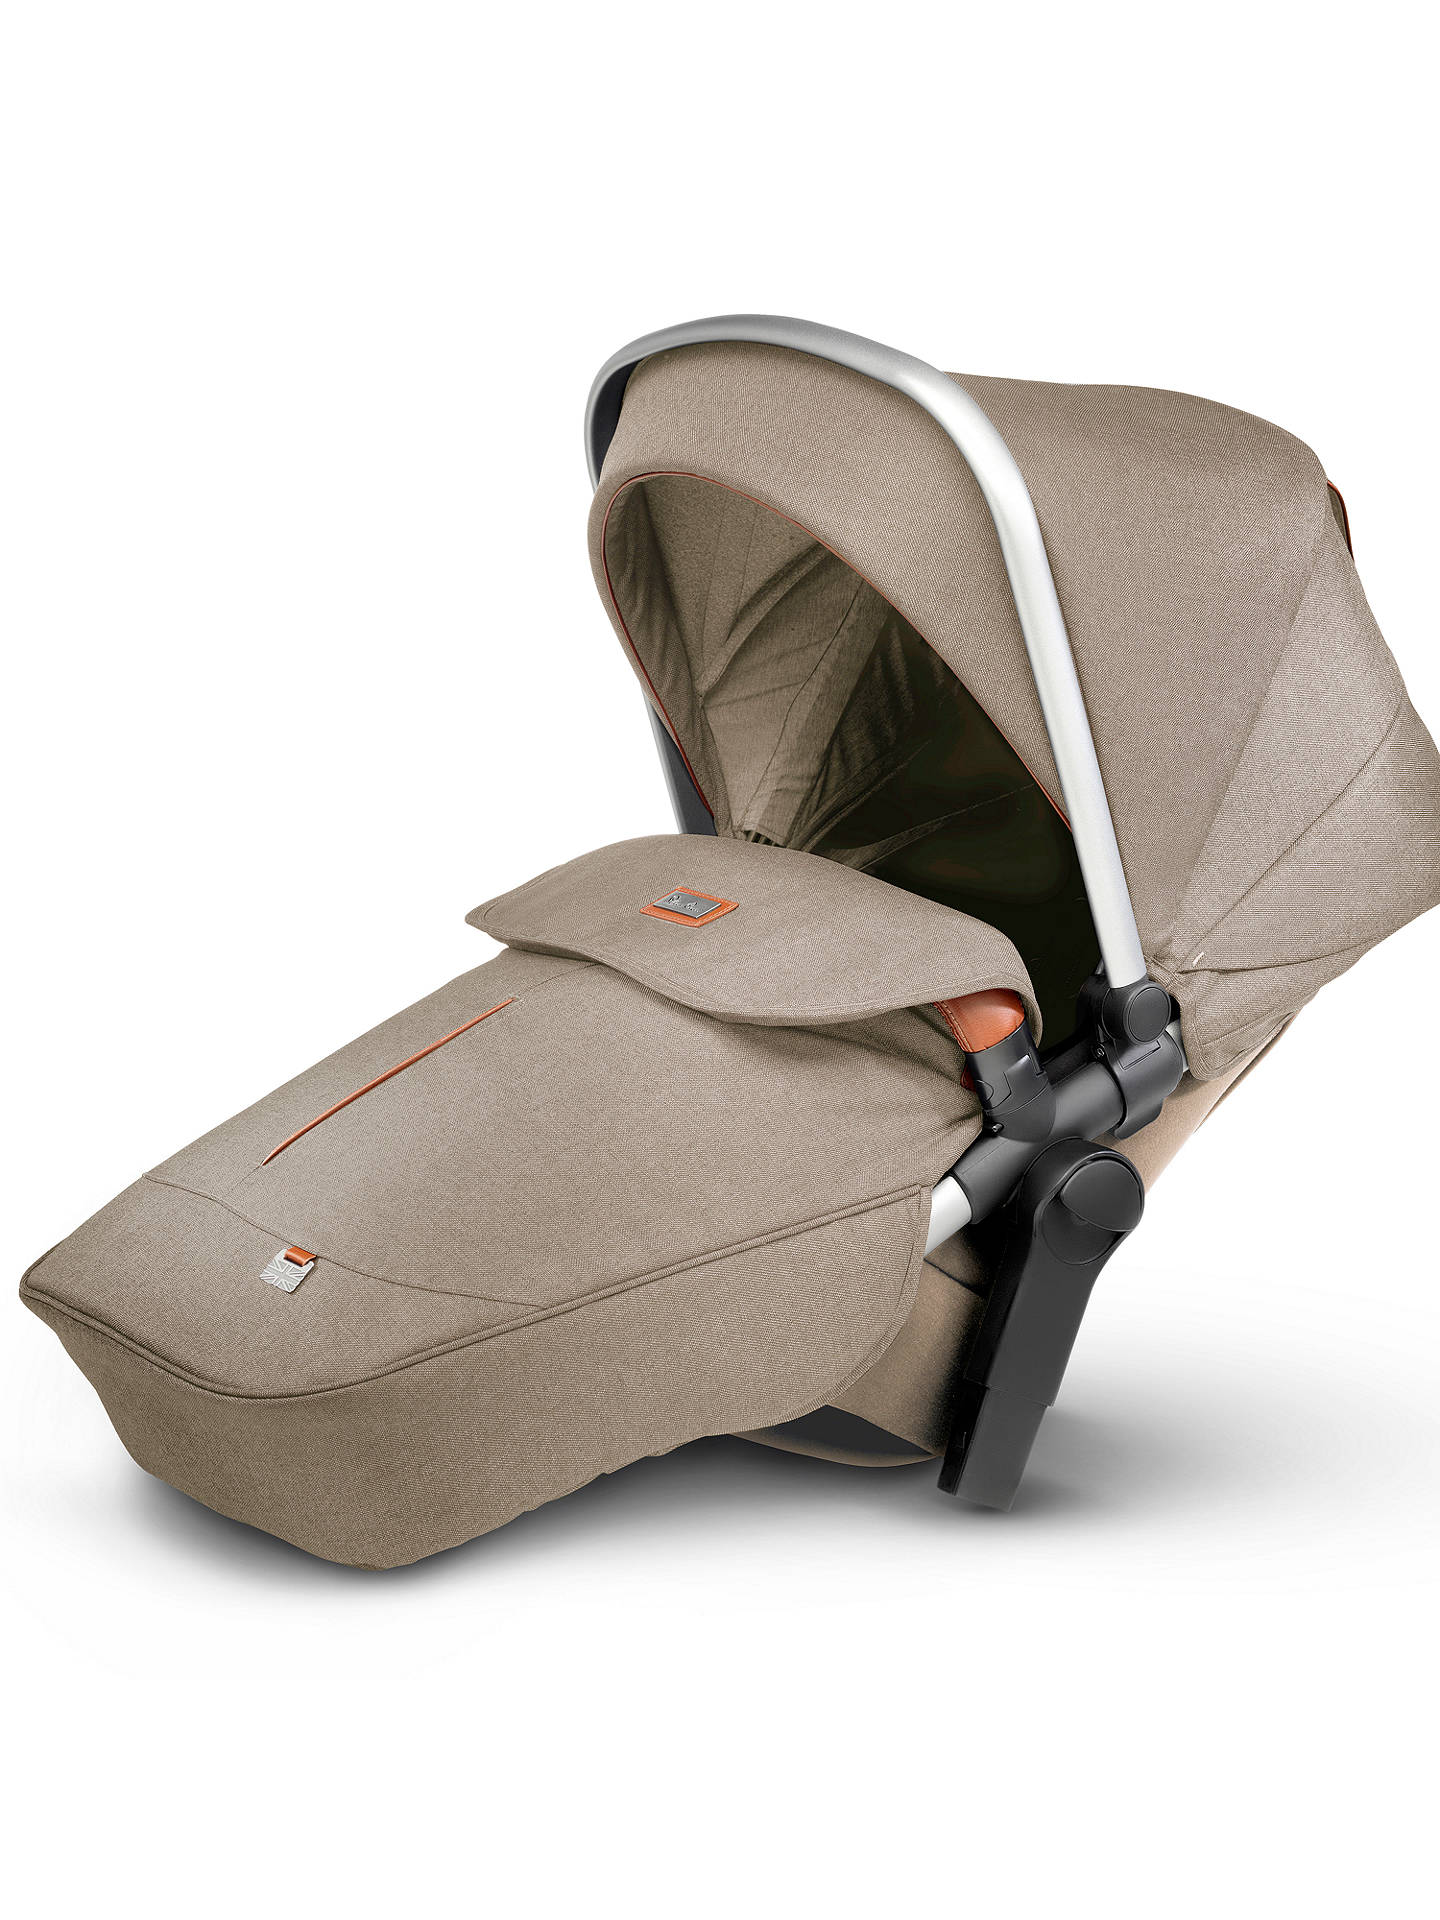 BuySilver Cross Wave Tandem Seat Unit, Linen Online at johnlewis.com